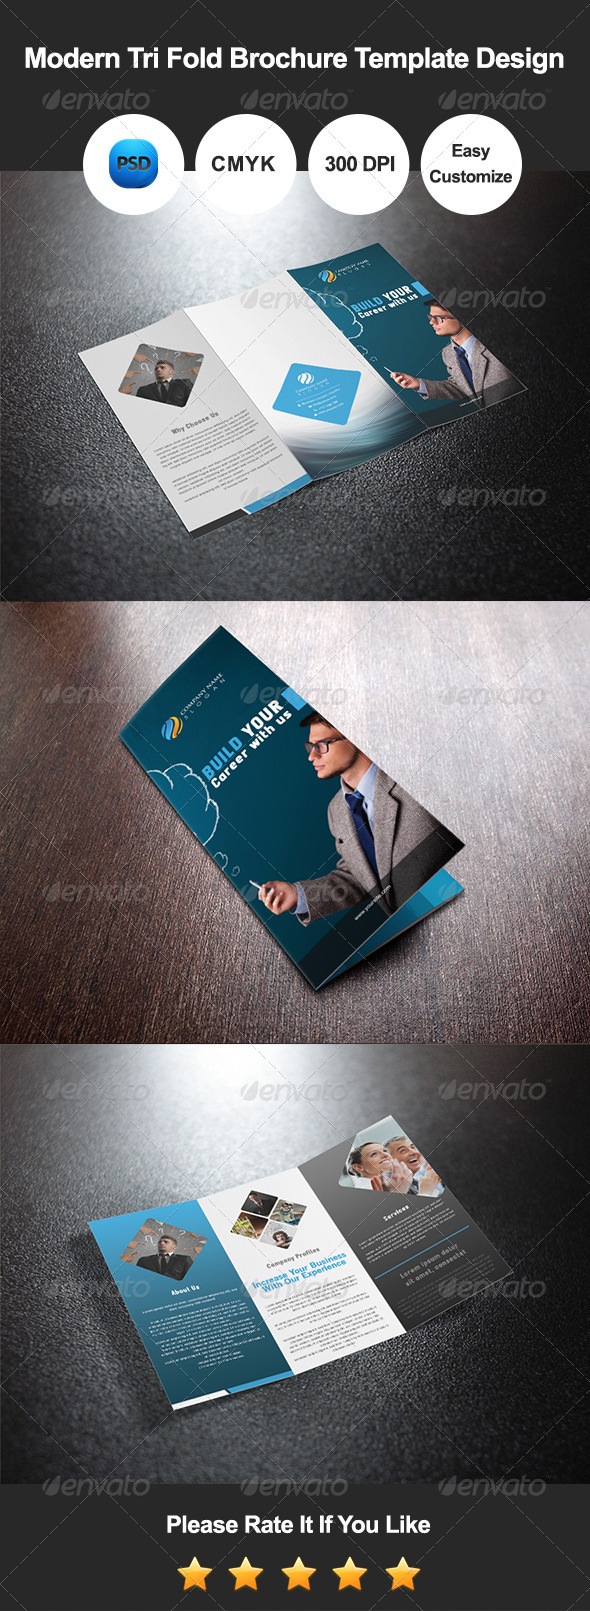 GraphicRiver Modern Tri Fold Brochure Template Design 8597922